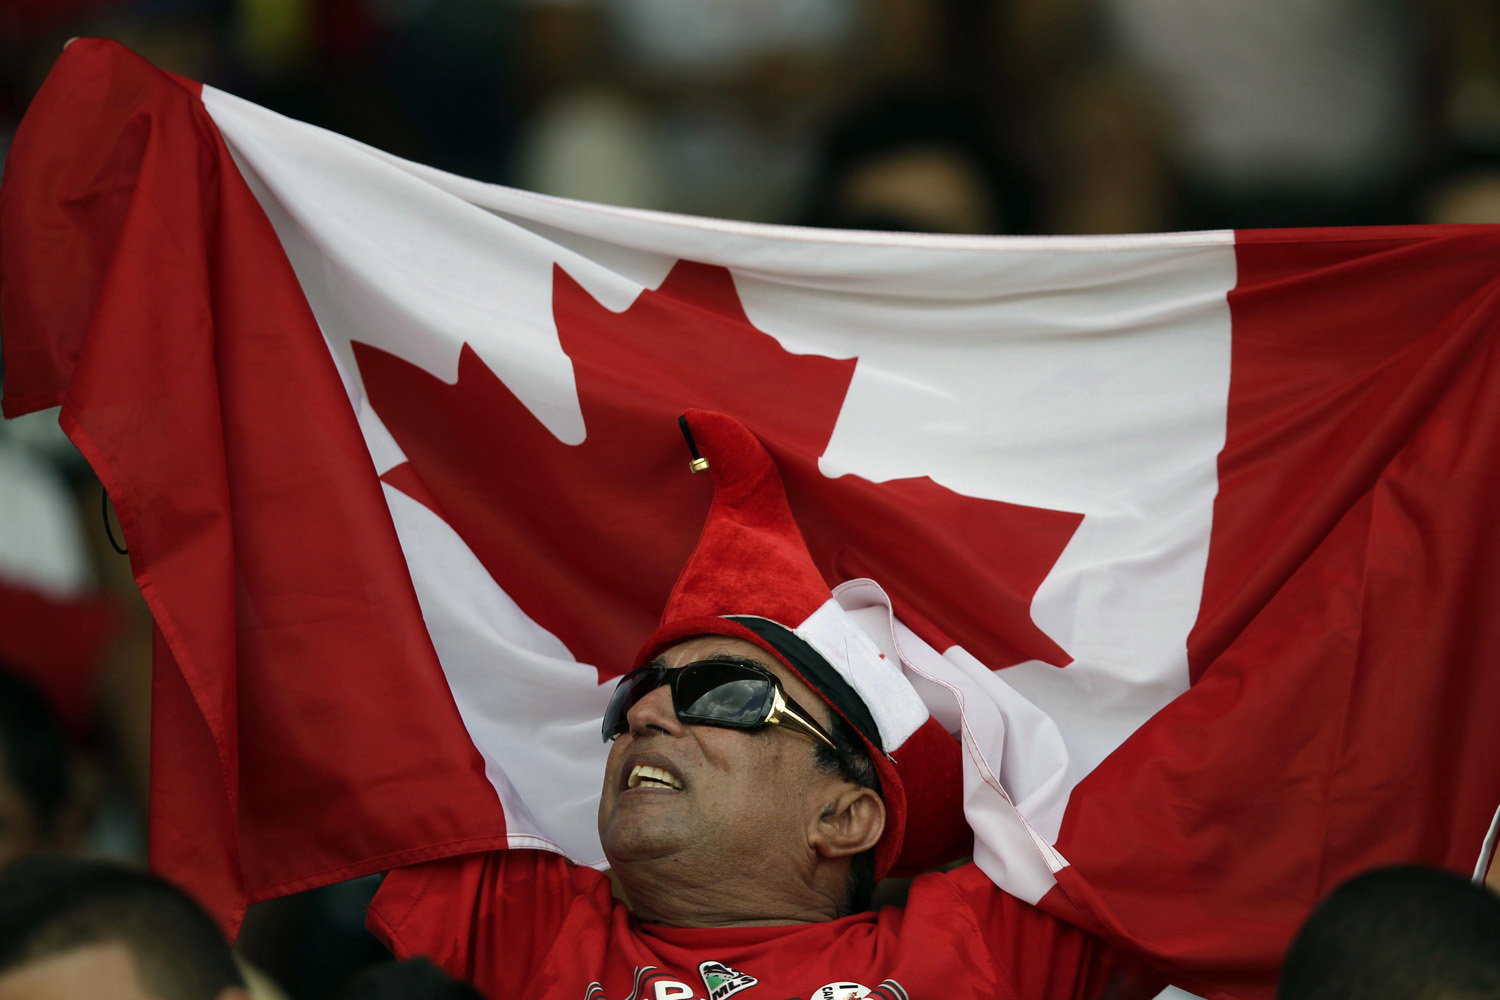 A supporter holds up a Canadian flag before a World Cup 2014 qualifying soccer game between Canada and Cuba in Havana, June 8, 2012. THE ASSOCIATED PRESS/Franklin Reyes